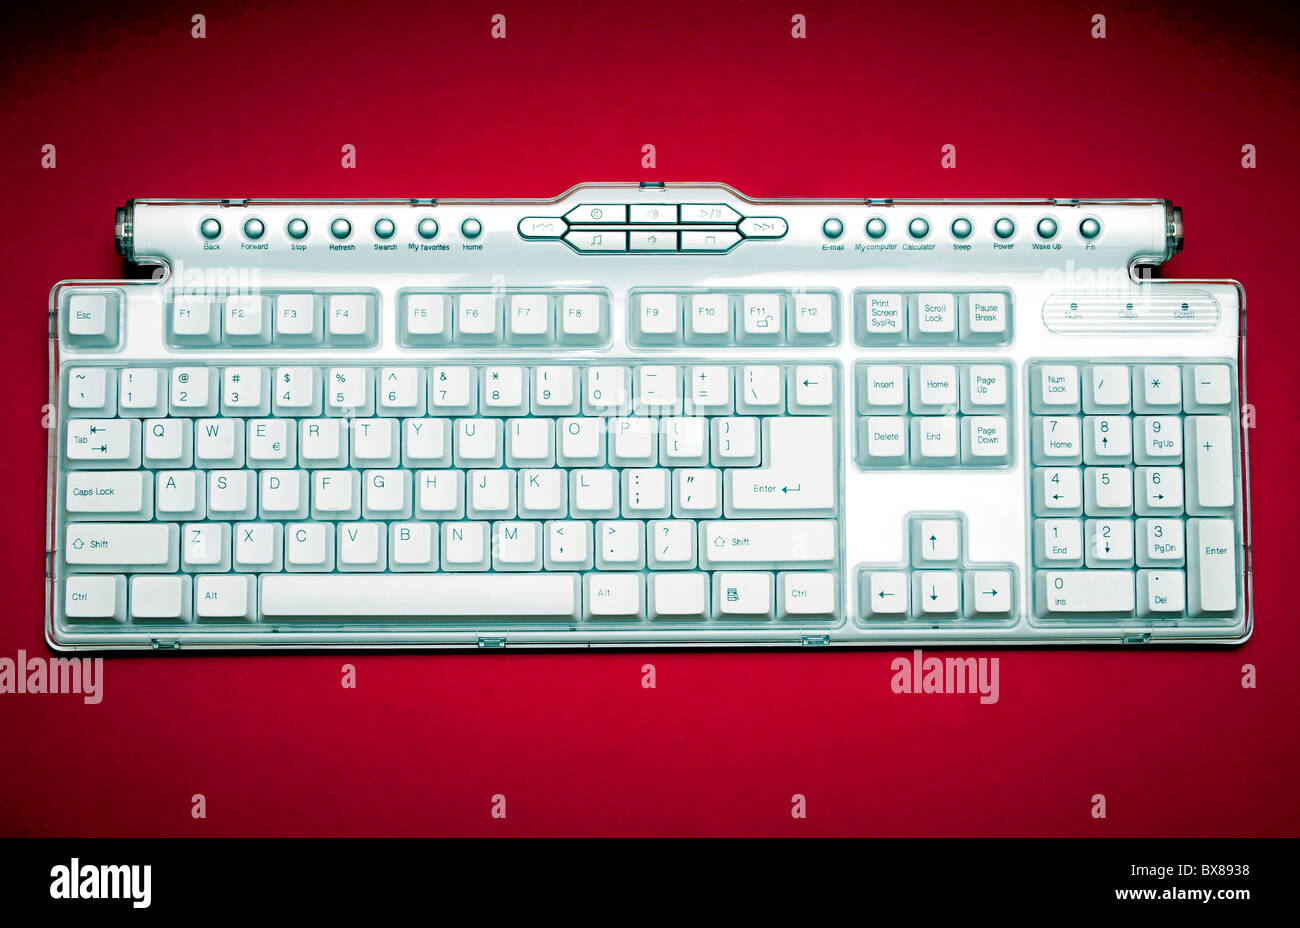 wireless computer keyboard - Stock Image